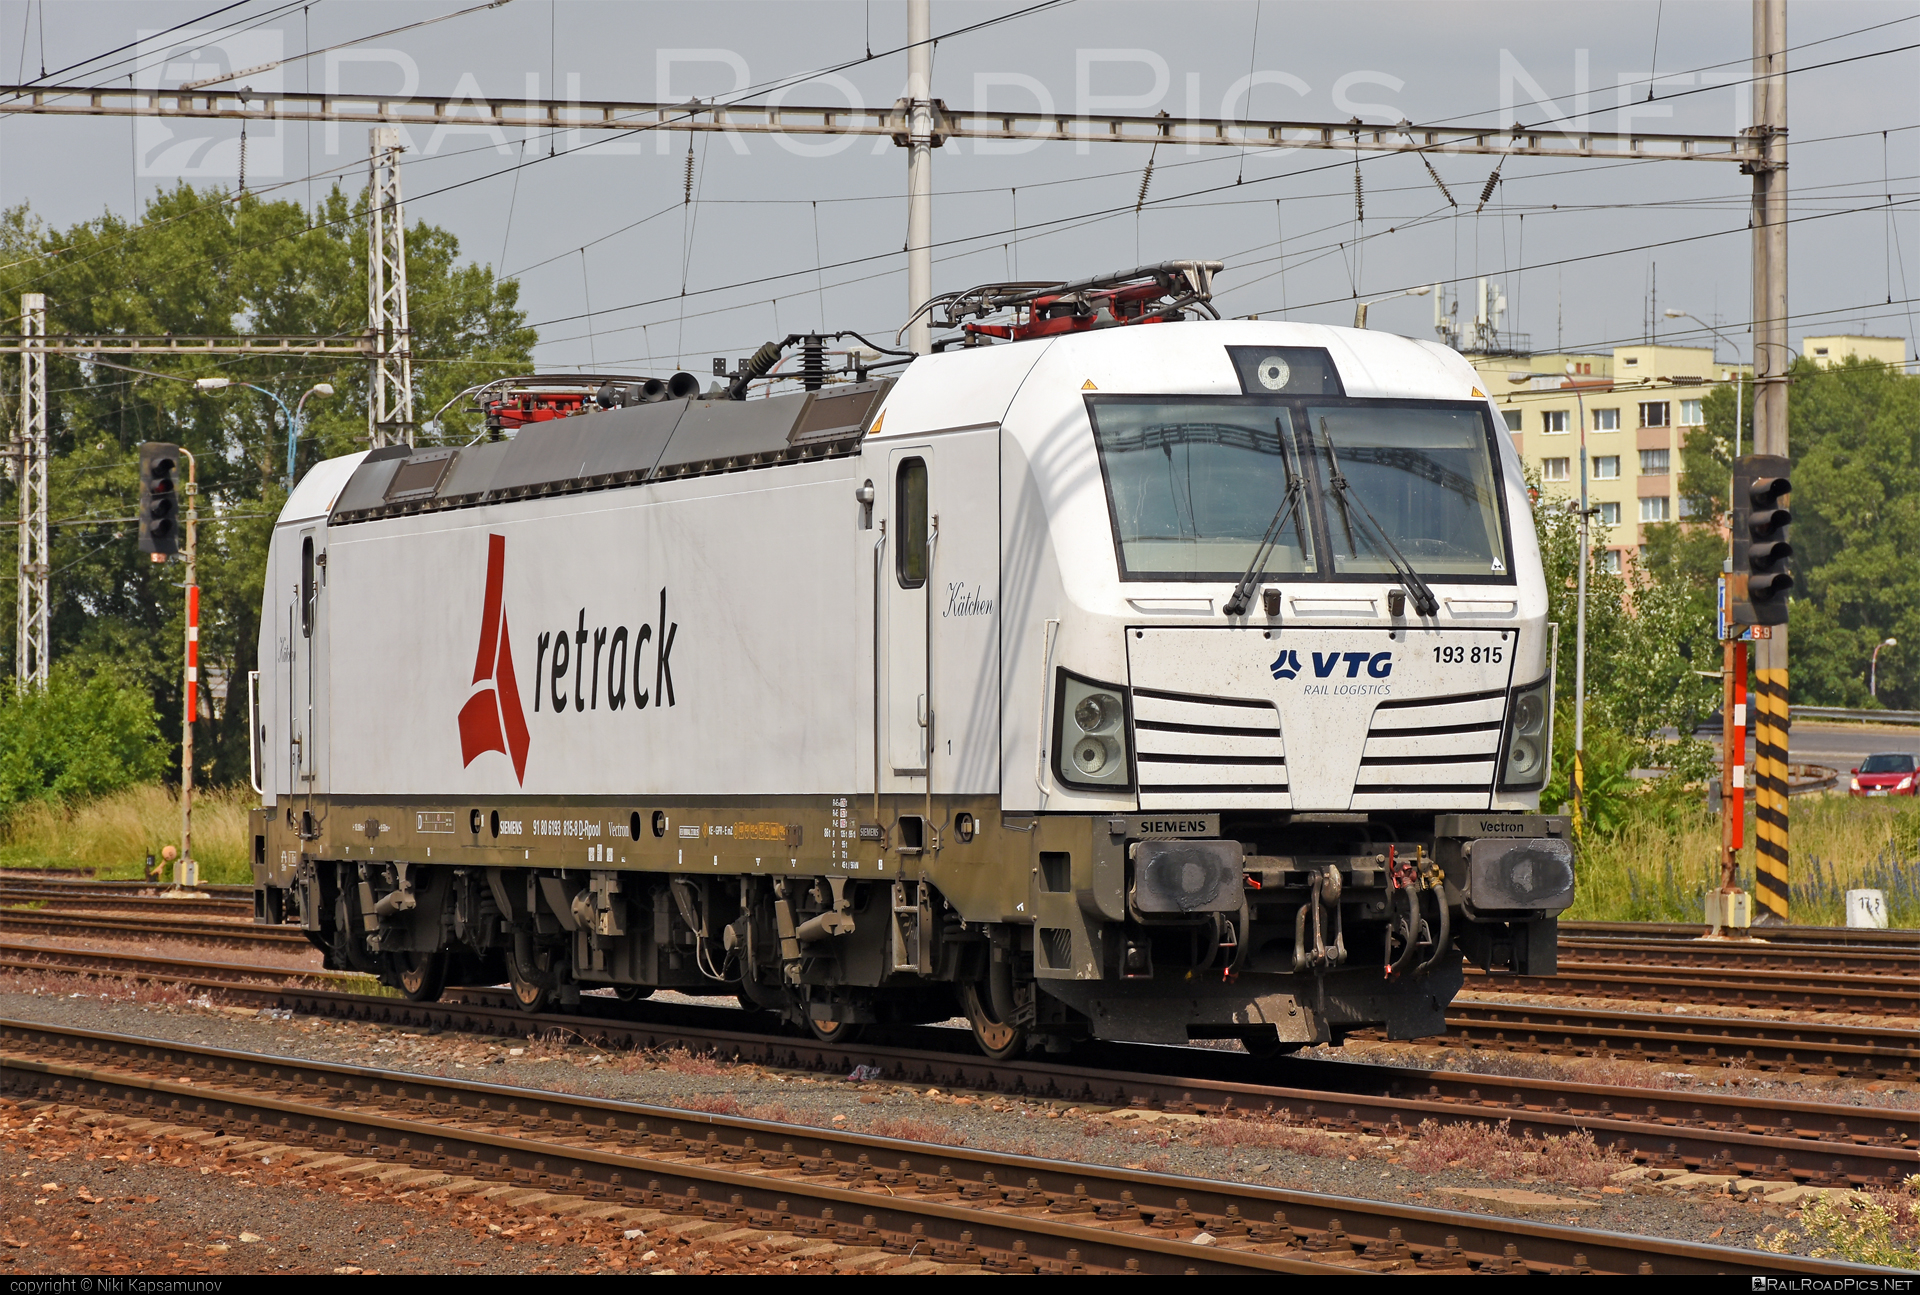 Siemens Vectron AC - 193 815 operated by Retrack GmbH & Co. KG #railpool #railpoolgmbh #retrack #retrackgmbh #siemens #siemensvectron #siemensvectronac #vectron #vectronac